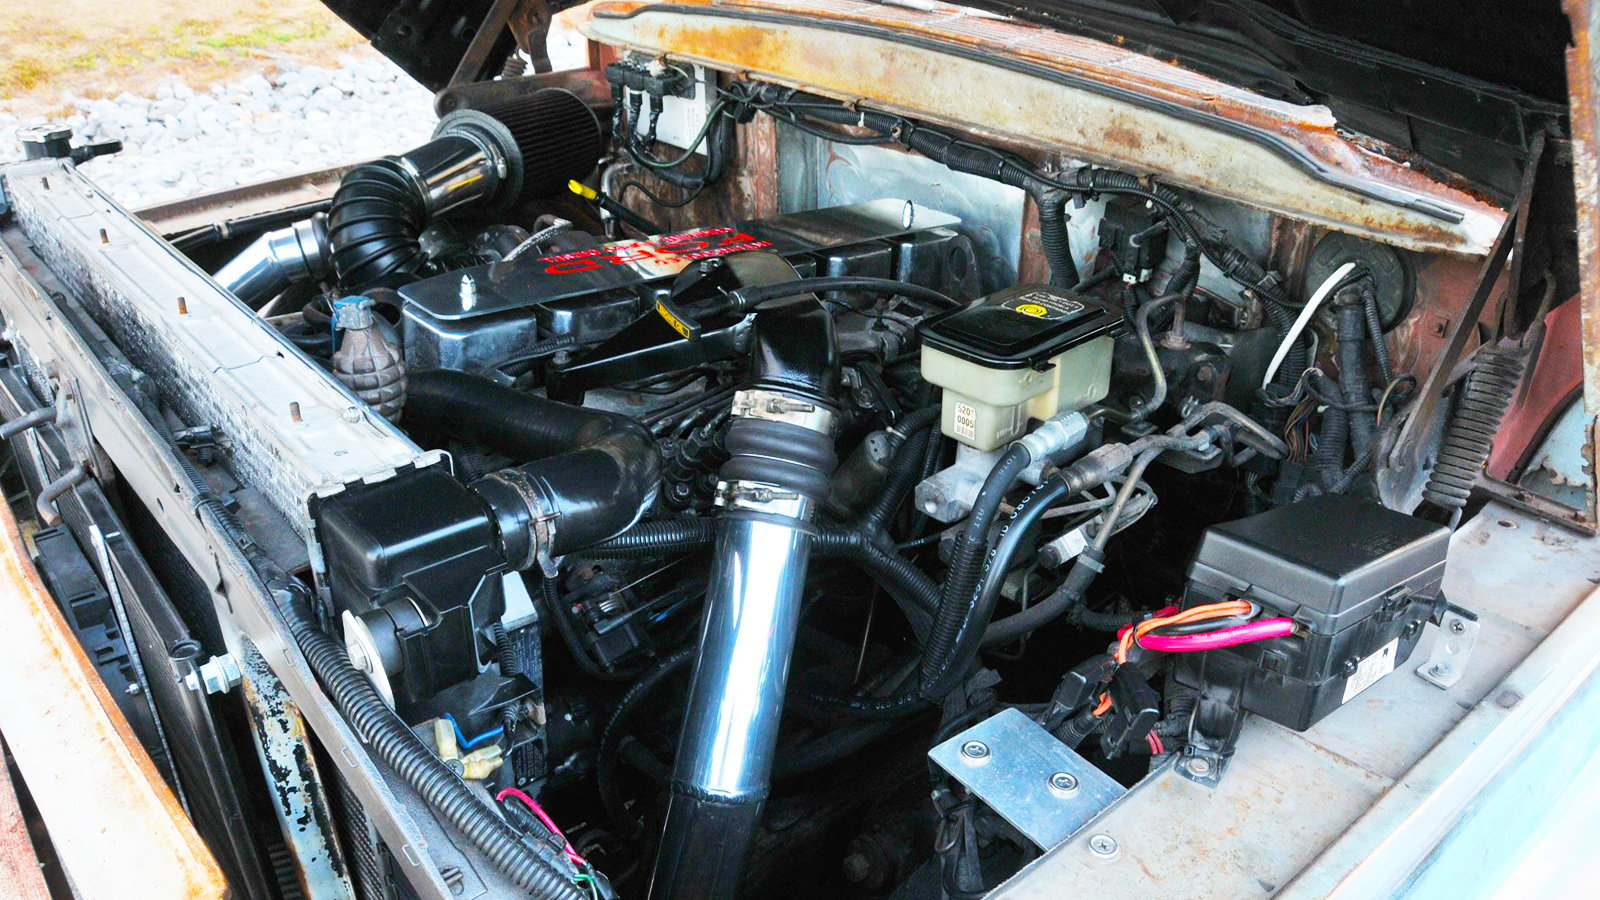 1959 F-100 Gets 12-Valve Cummins Diesel